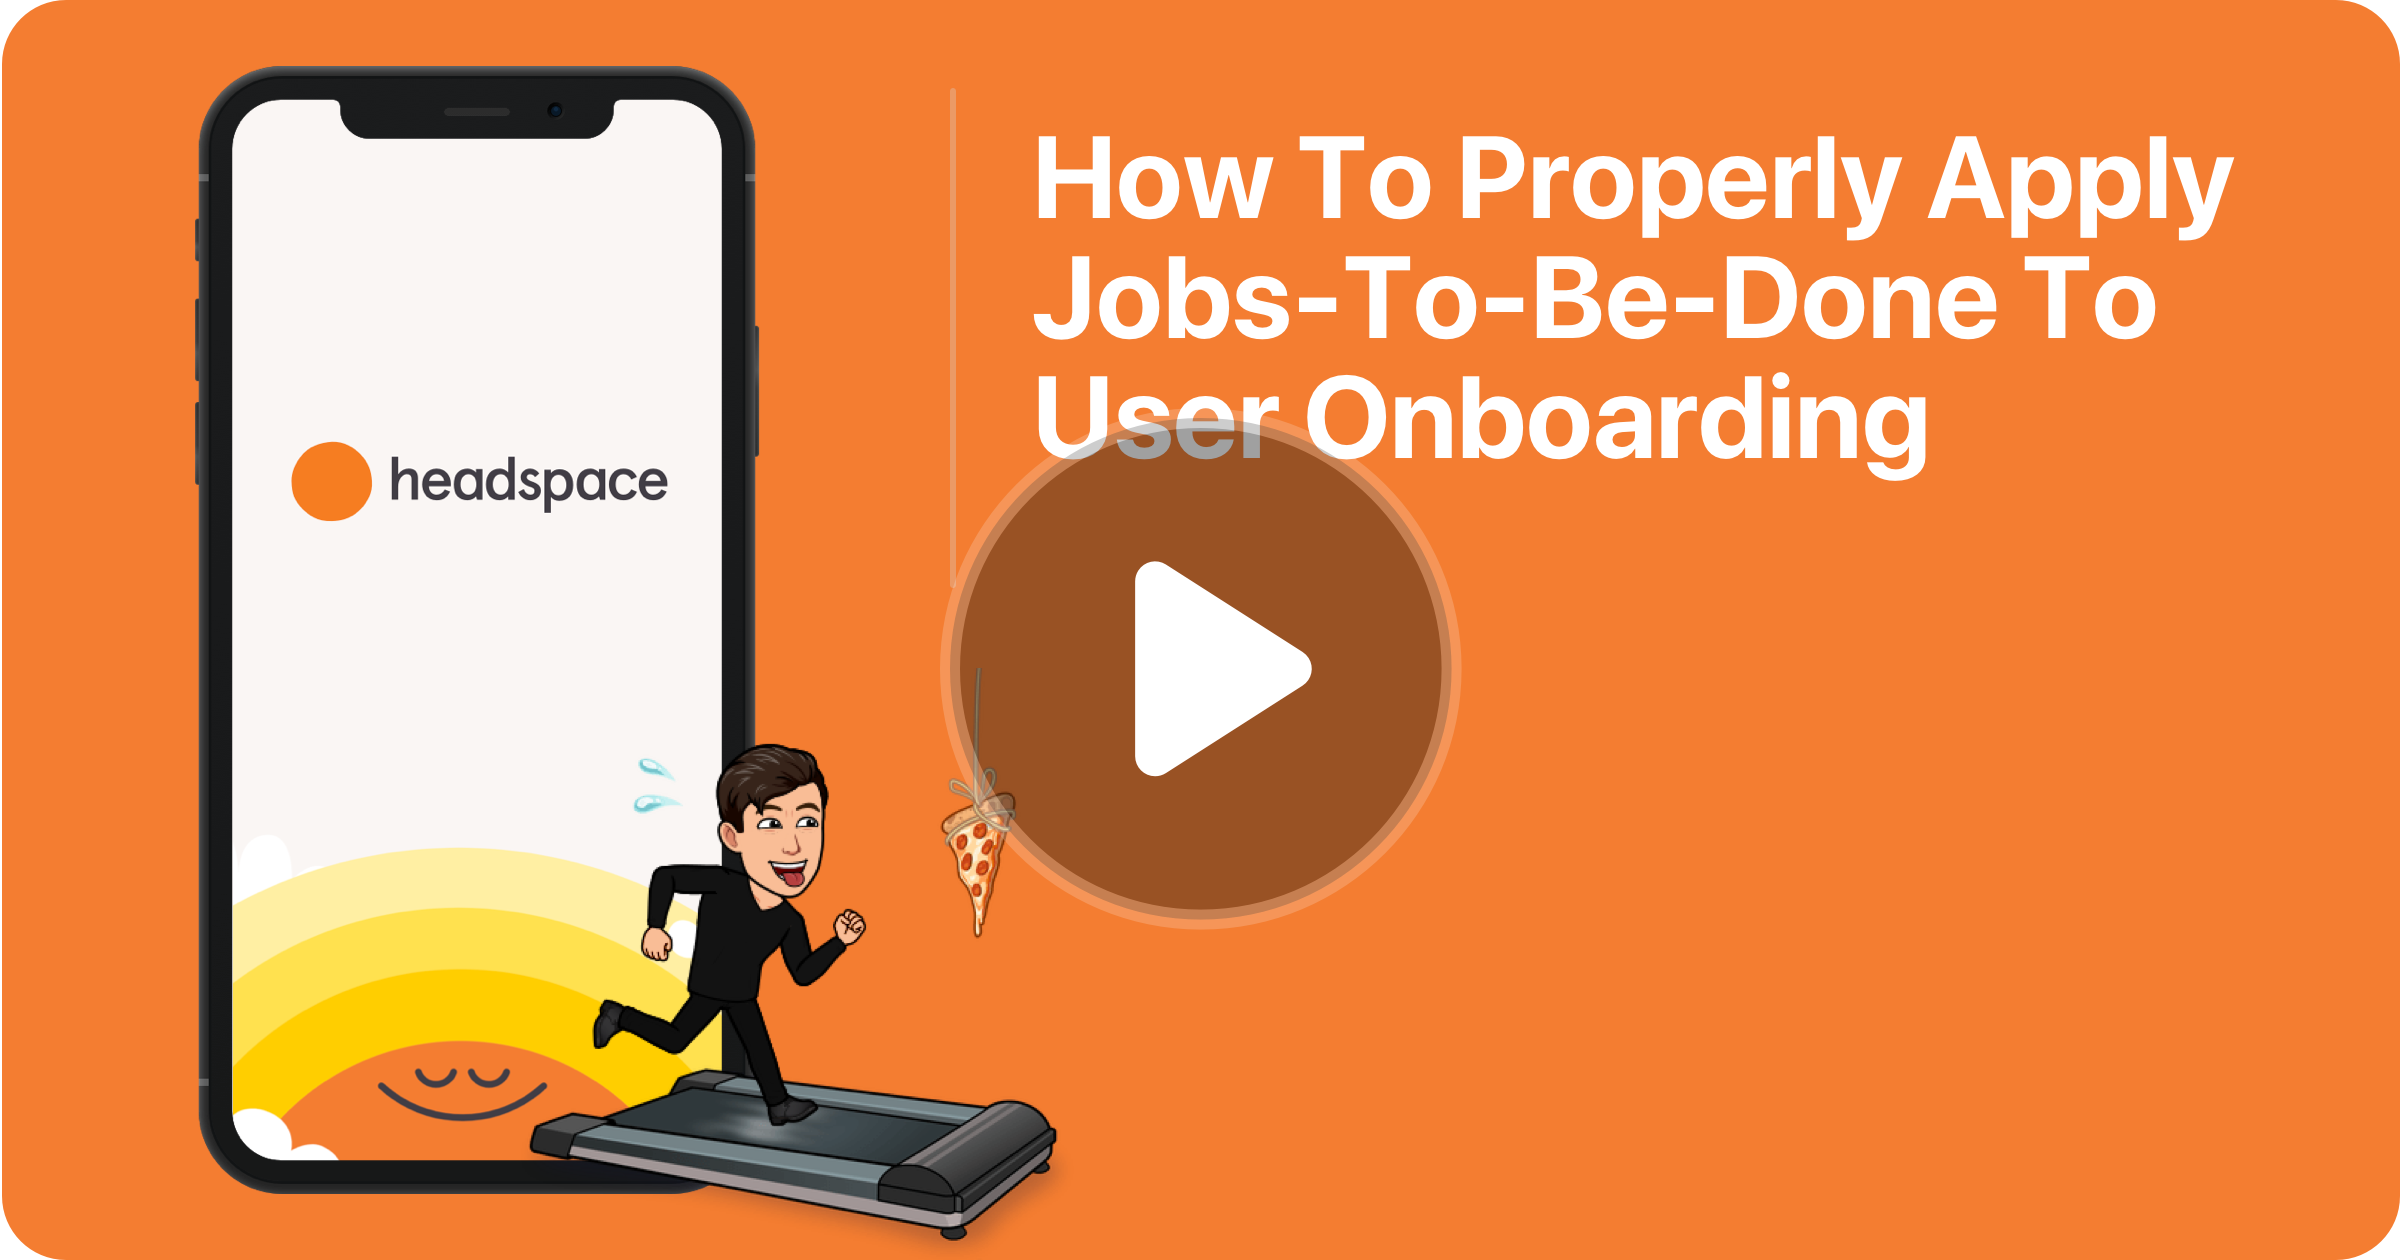 Case Study: Apply Jobs-to-be-Done to Headspace's Onboarding